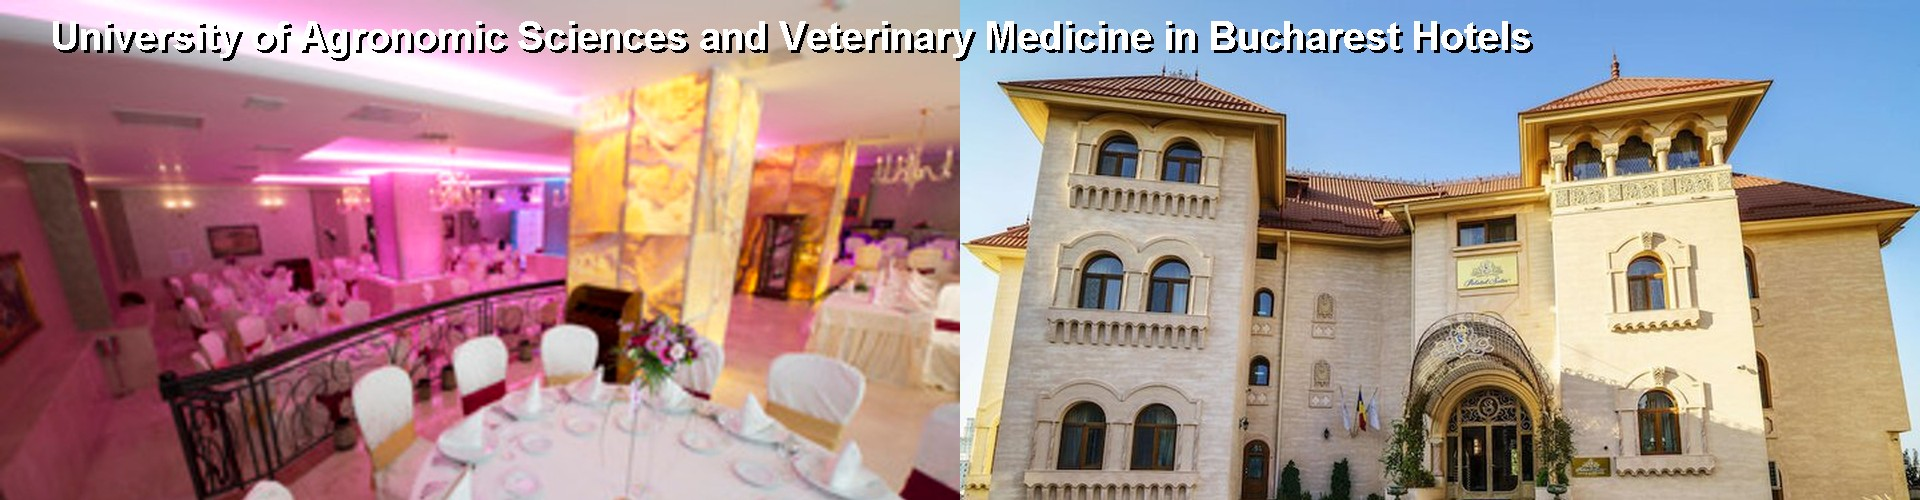 5 Best Hotels near University of Agronomic Sciences and Veterinary Medicine in Bucharest